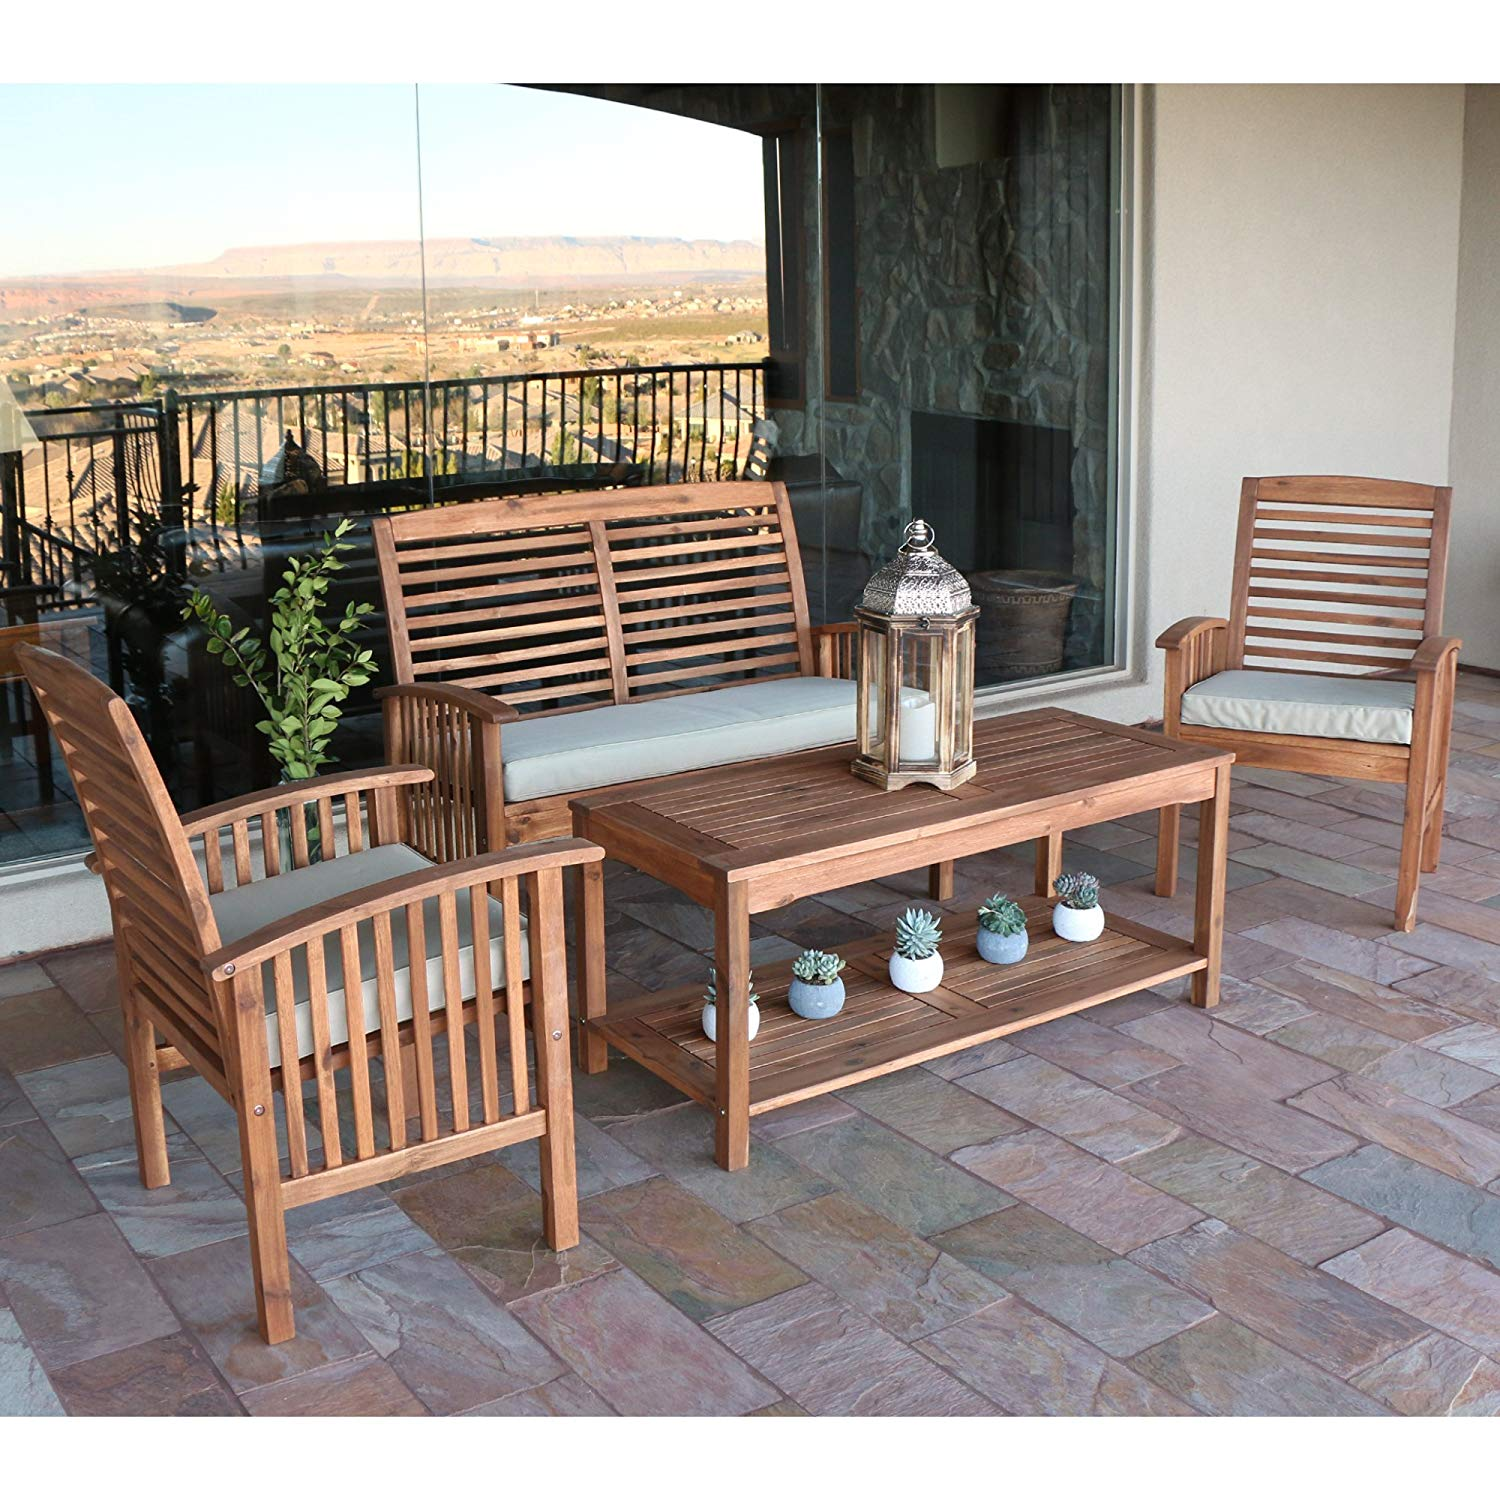 Acacia Wood Durability For Outdoor Furniture: [Review] Solid Acacia Wood 4-Piece Patio Set By Walker